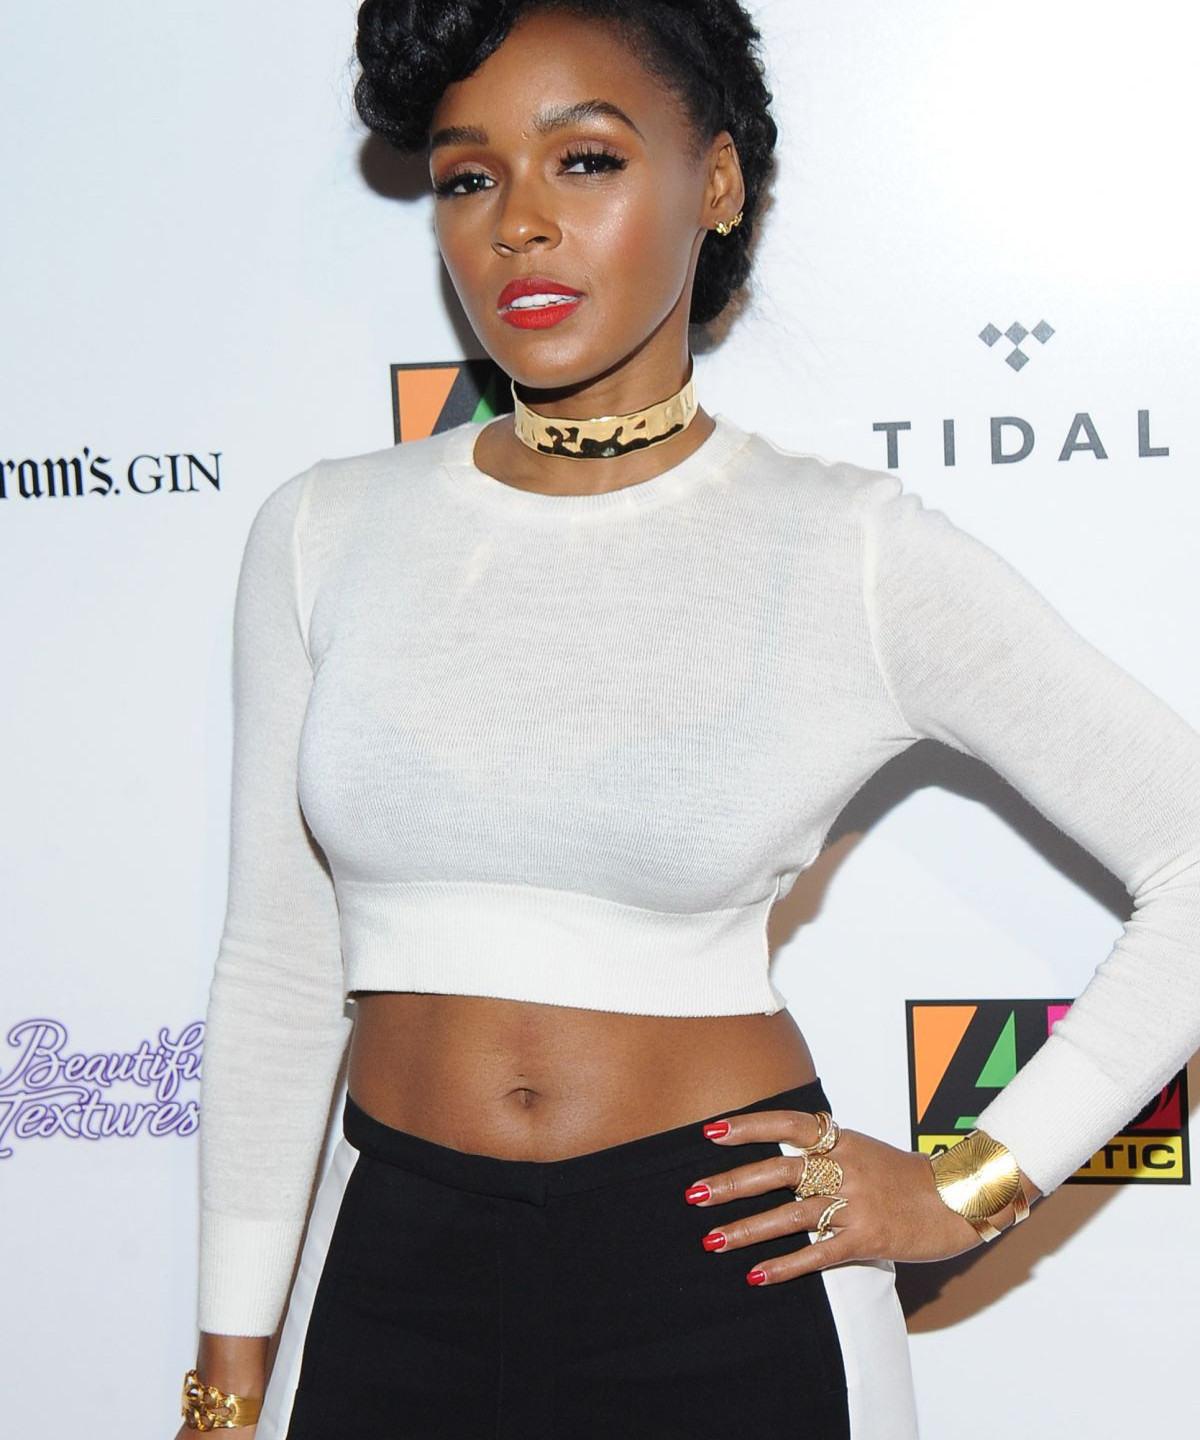 janelle-monae-at-atlantic-records-bet-awards-afterparty-in-los-angeles_1